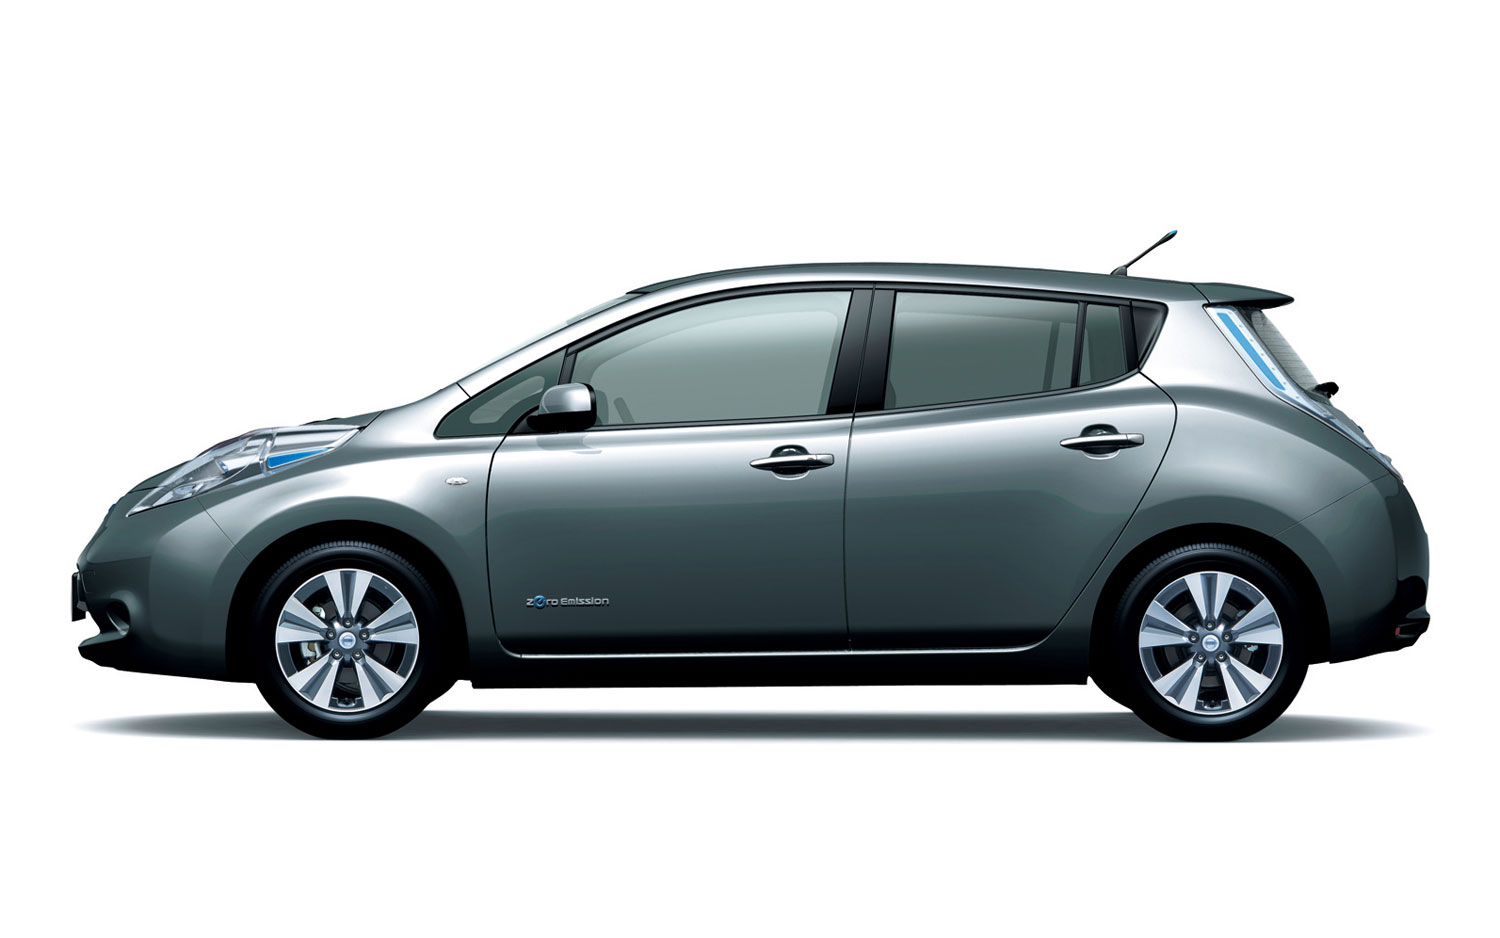 nissan-leaf-japanese-spec-dark-metal-gray-side-view.jpg